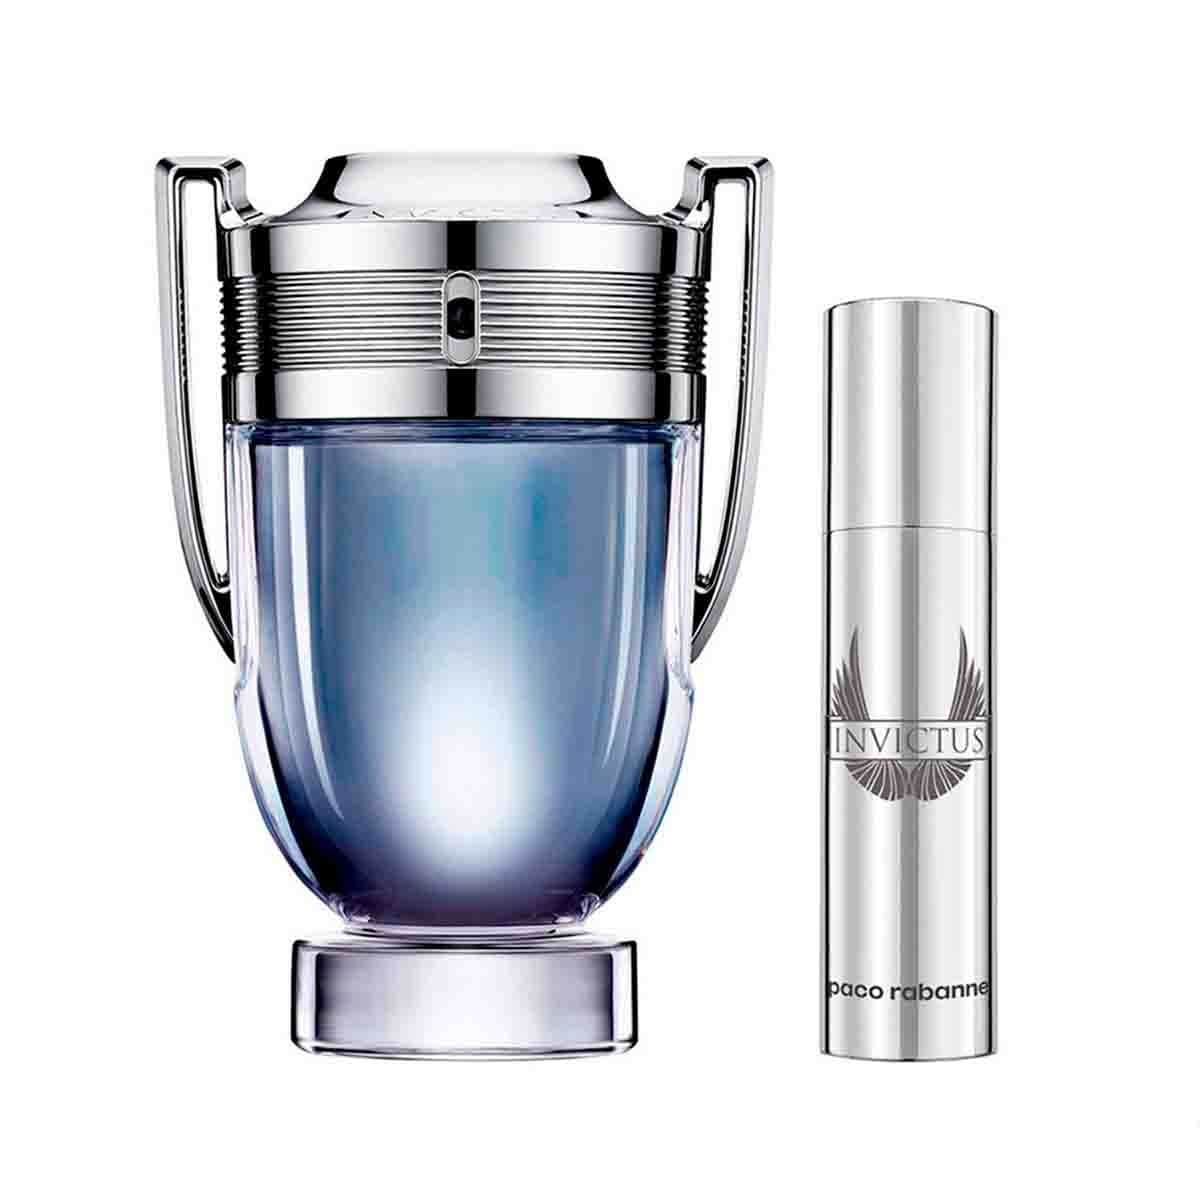 Fragancia para Caballero Paco Rabanne Invictus Xmas Collector Edt 100 Ml + Travel Spray